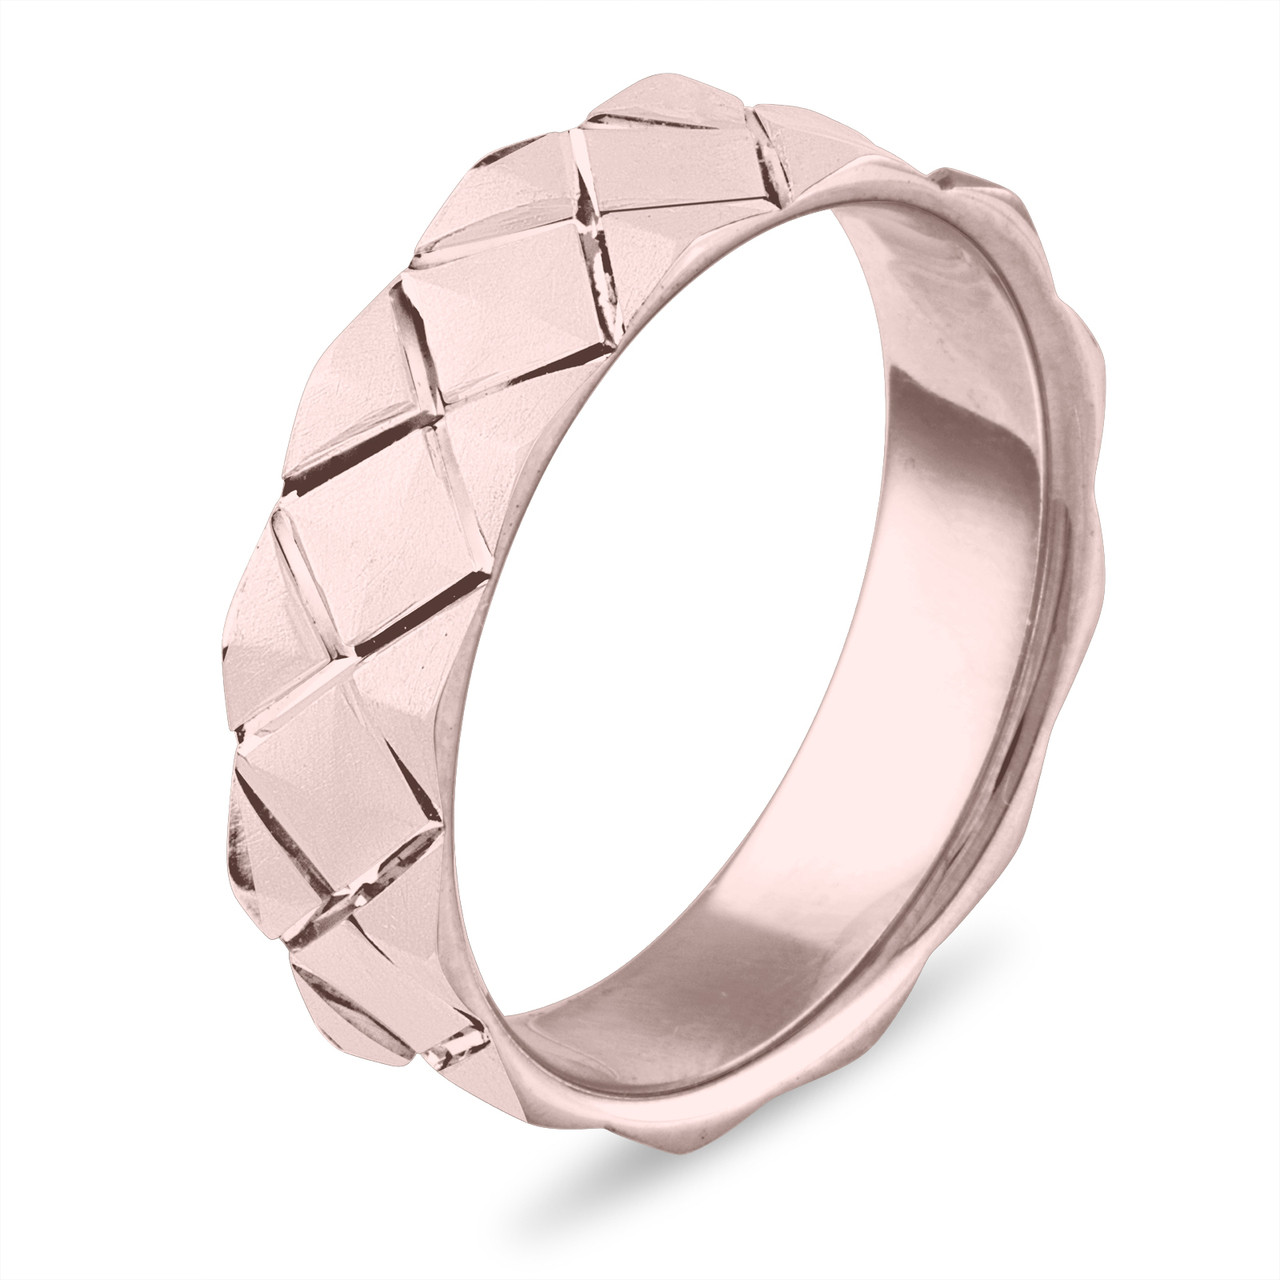 Mens Rose Gold Wedding Band.Wedding Band Rose Gold Mens Wedding Band Womens Wedding Ring 6 Mm Matte Finish Wedding Band Unique